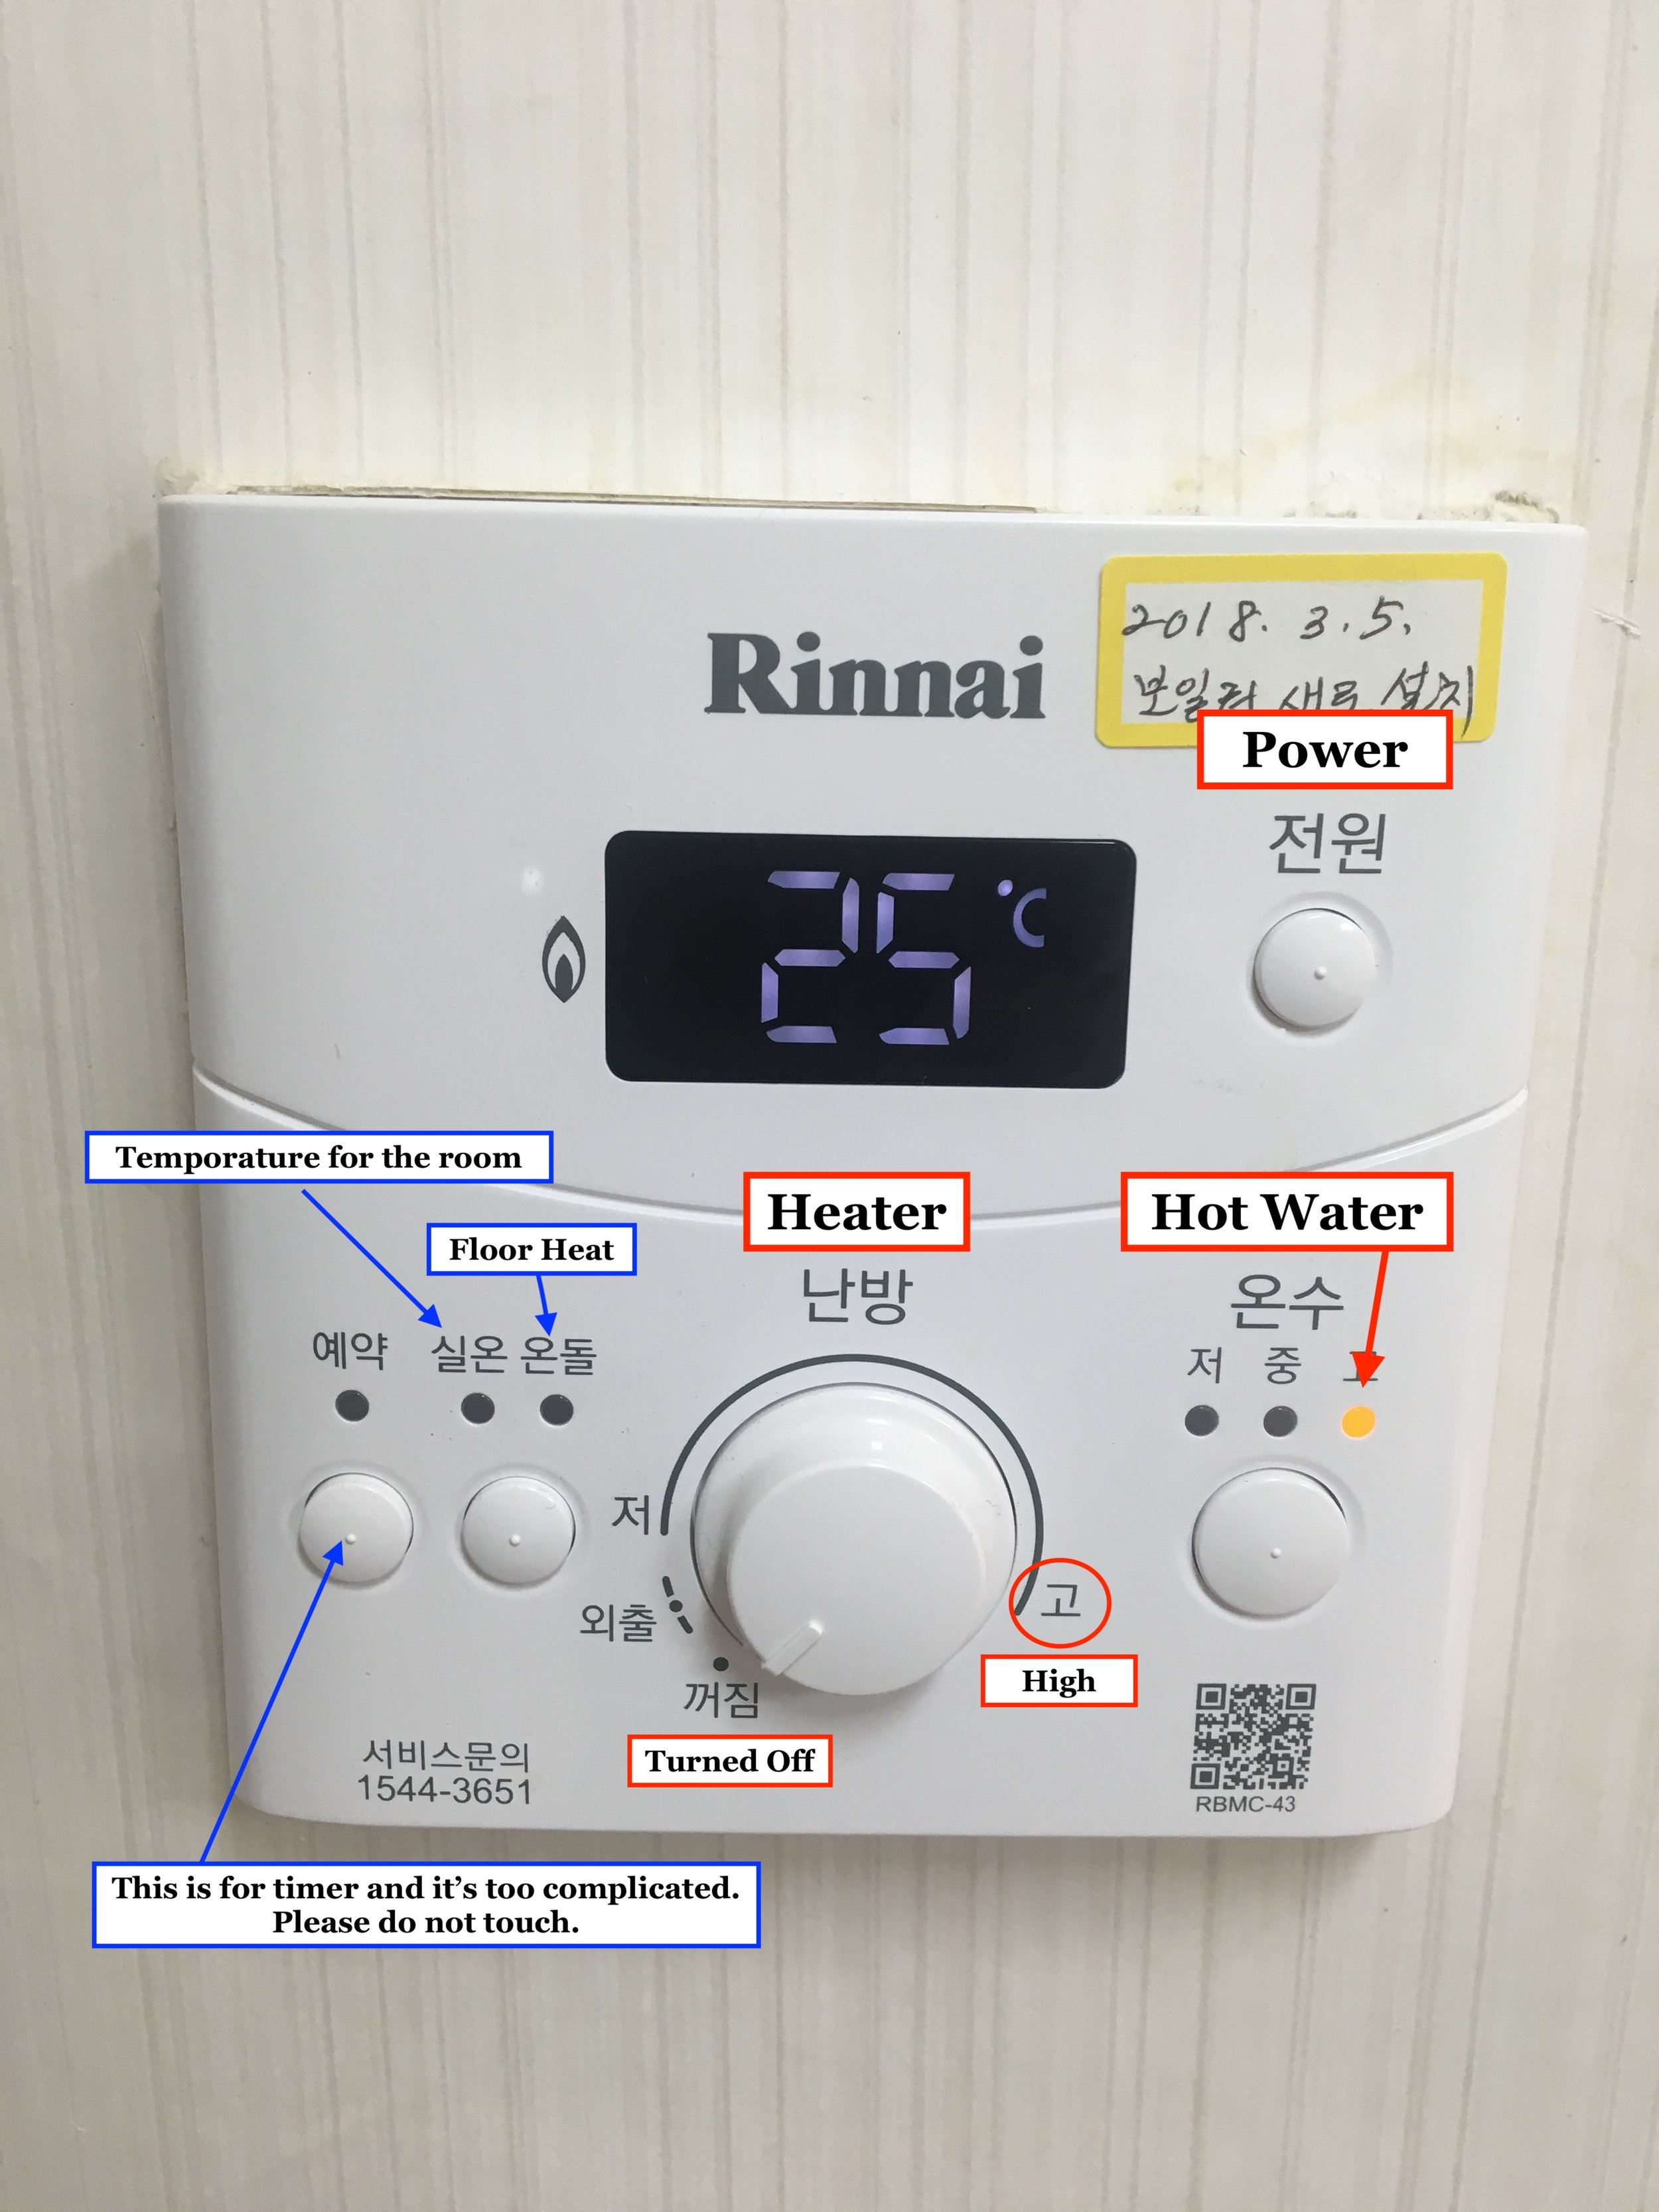 Heater instruction - In order to use hot water, 온수 (hot water) light should be on. 전원 is power. In the winter time, you will use 난방 (floor heater). When you turn the knob, you will be able to choose your comfortable temperature.* Usually 22 degree would be warm enough. It will take about 15-20 mins for the room to feel warm.